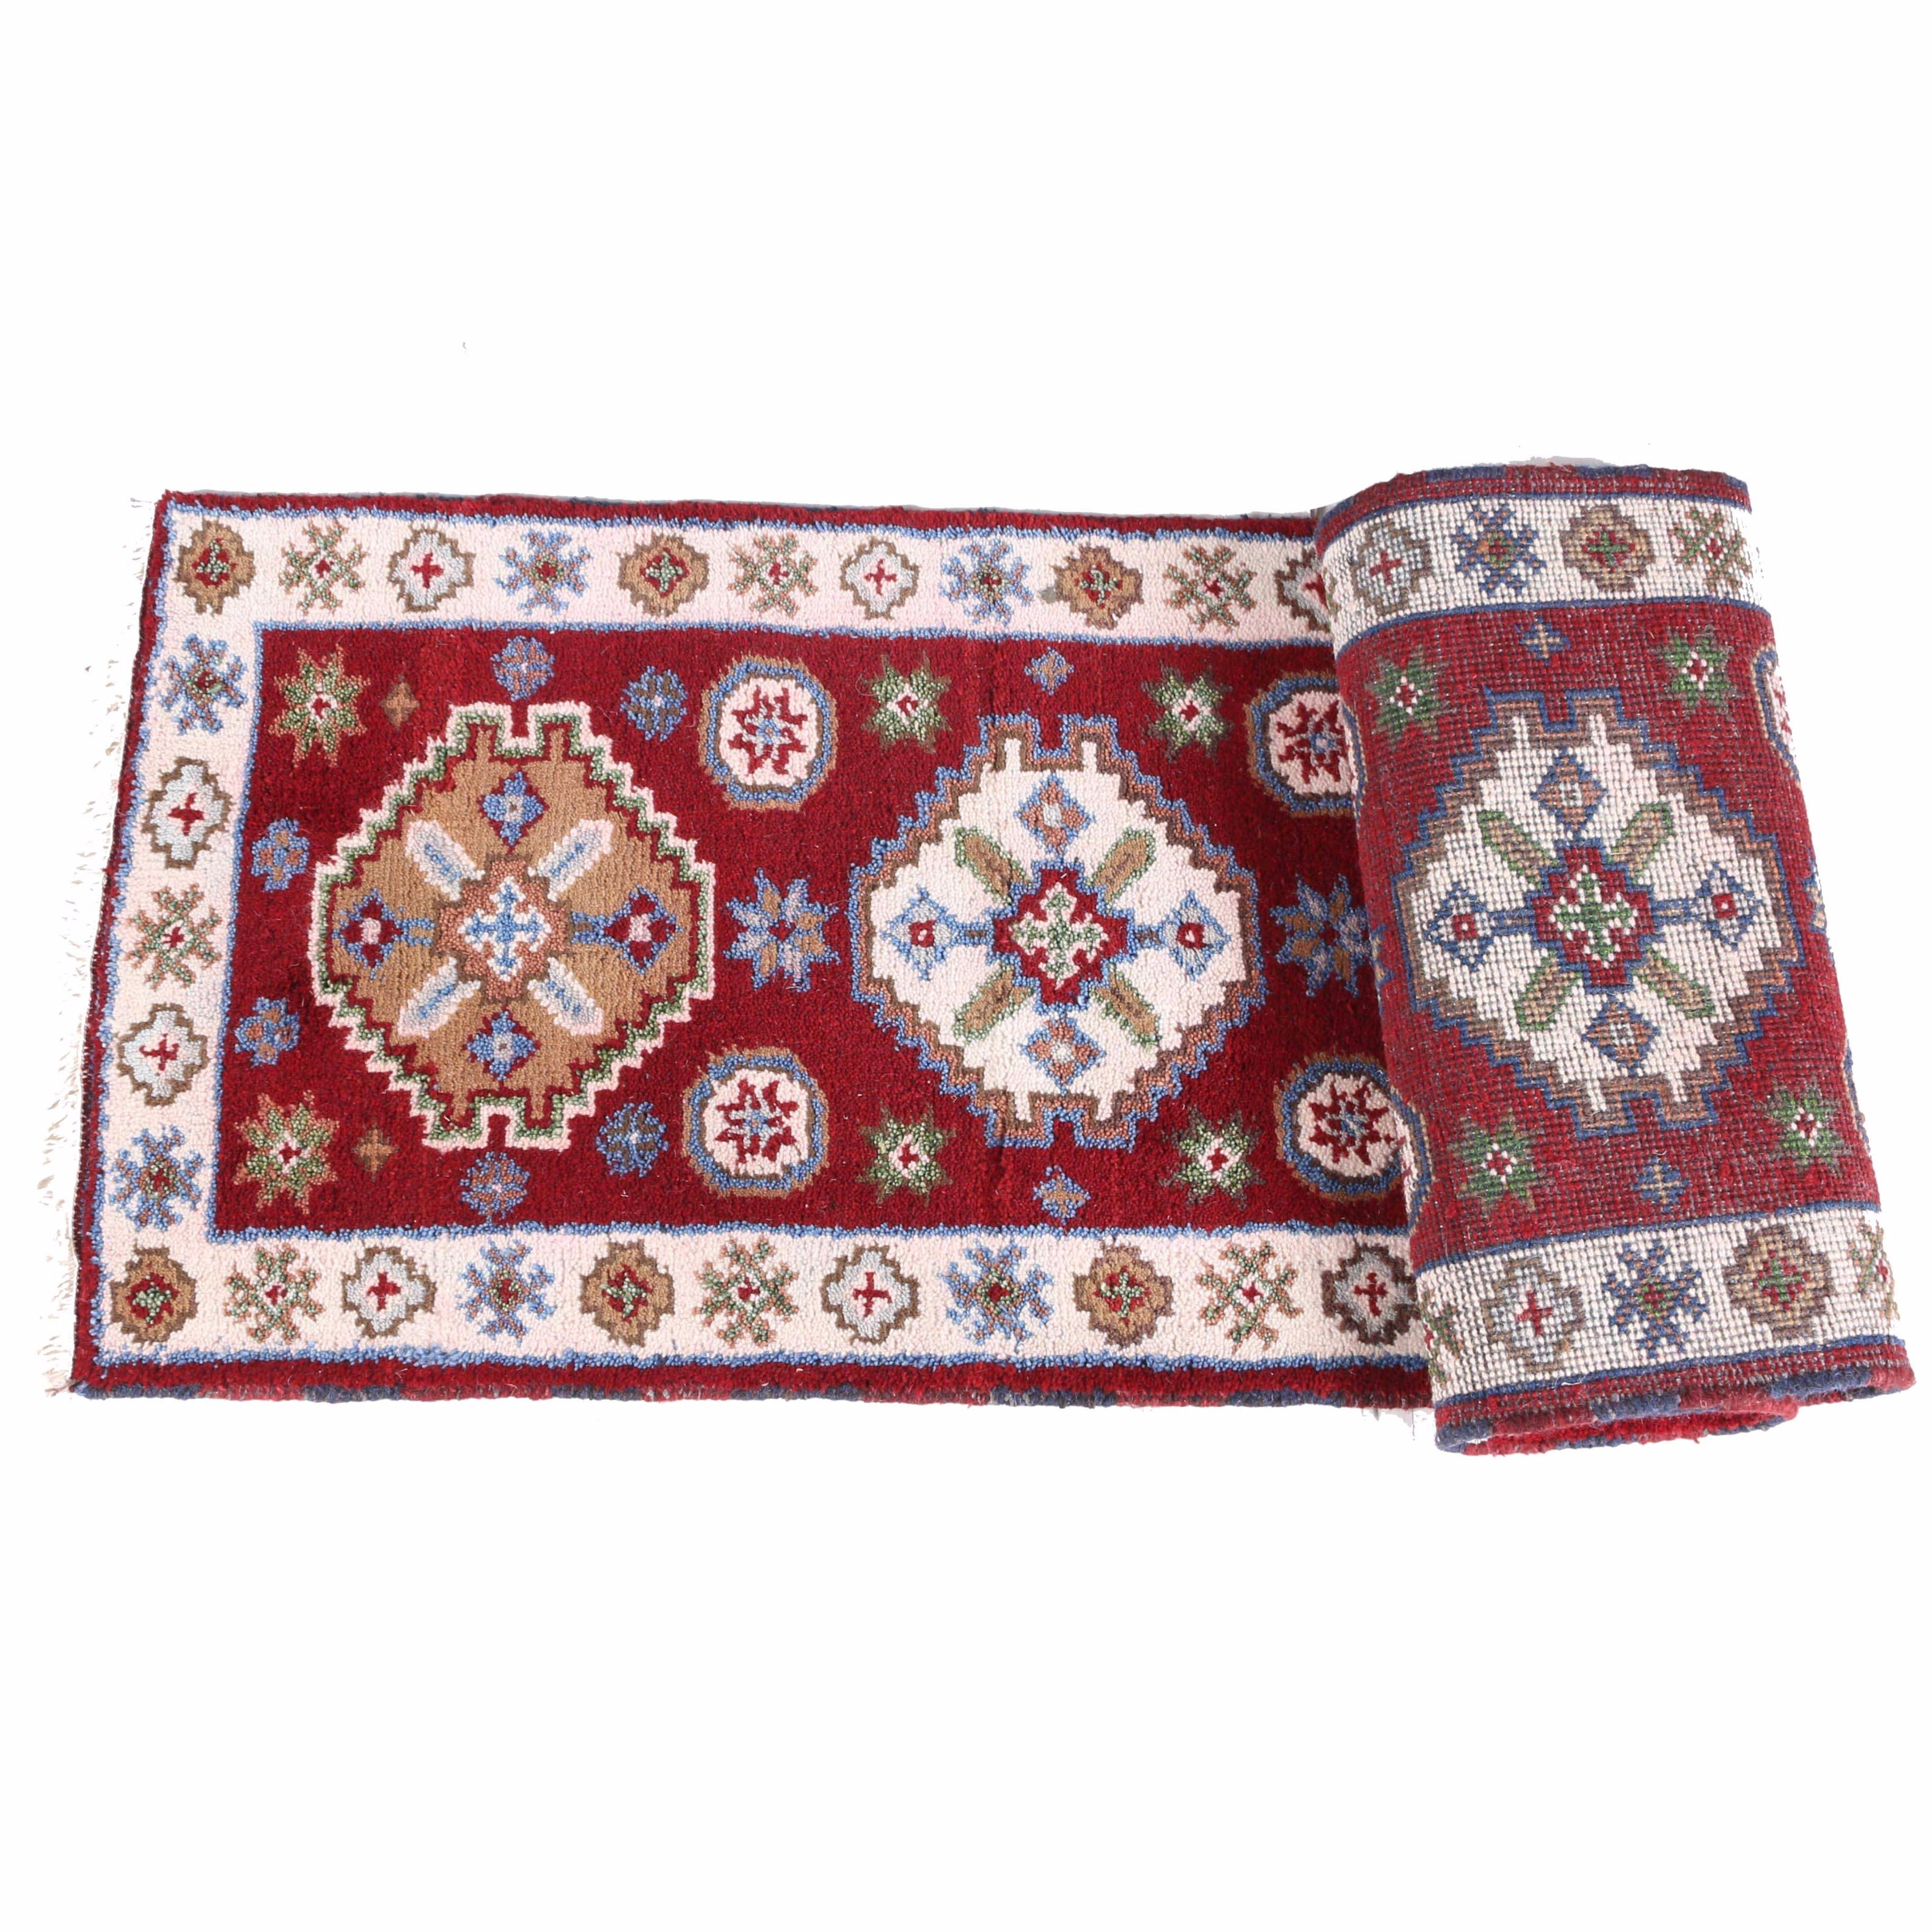 Hand-Knotted Indo-Anatolian Carpet Runner